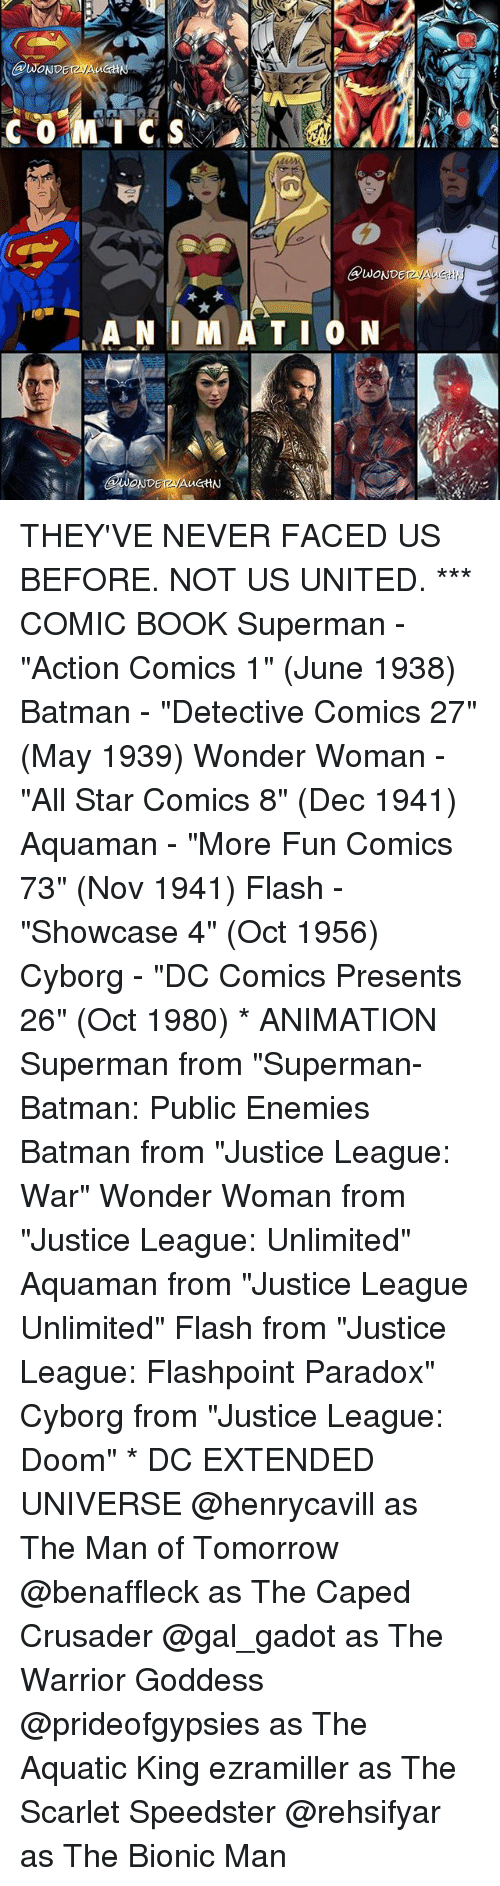 "the warrior: @LMOND  WONDE  ANIMATION  NDETWAuGHN THEY'VE NEVER FACED US BEFORE. NOT US UNITED. *** COMIC BOOK Superman - ""Action Comics 1"" (June 1938) Batman - ""Detective Comics 27"" (May 1939) Wonder Woman - ""All Star Comics 8"" (Dec 1941) Aquaman - ""More Fun Comics 73"" (Nov 1941) Flash - ""Showcase 4"" (Oct 1956) Cyborg - ""DC Comics Presents 26"" (Oct 1980) * ANIMATION Superman from ""Superman-Batman: Public Enemies Batman from ""Justice League: War"" Wonder Woman from ""Justice League: Unlimited"" Aquaman from ""Justice League Unlimited"" Flash from ""Justice League: Flashpoint Paradox"" Cyborg from ""Justice League: Doom"" * DC EXTENDED UNIVERSE @henrycavill as The Man of Tomorrow @benaffleck as The Caped Crusader @gal_gadot as The Warrior Goddess @prideofgypsies as The Aquatic King ezramiller as The Scarlet Speedster @rehsifyar as The Bionic Man"